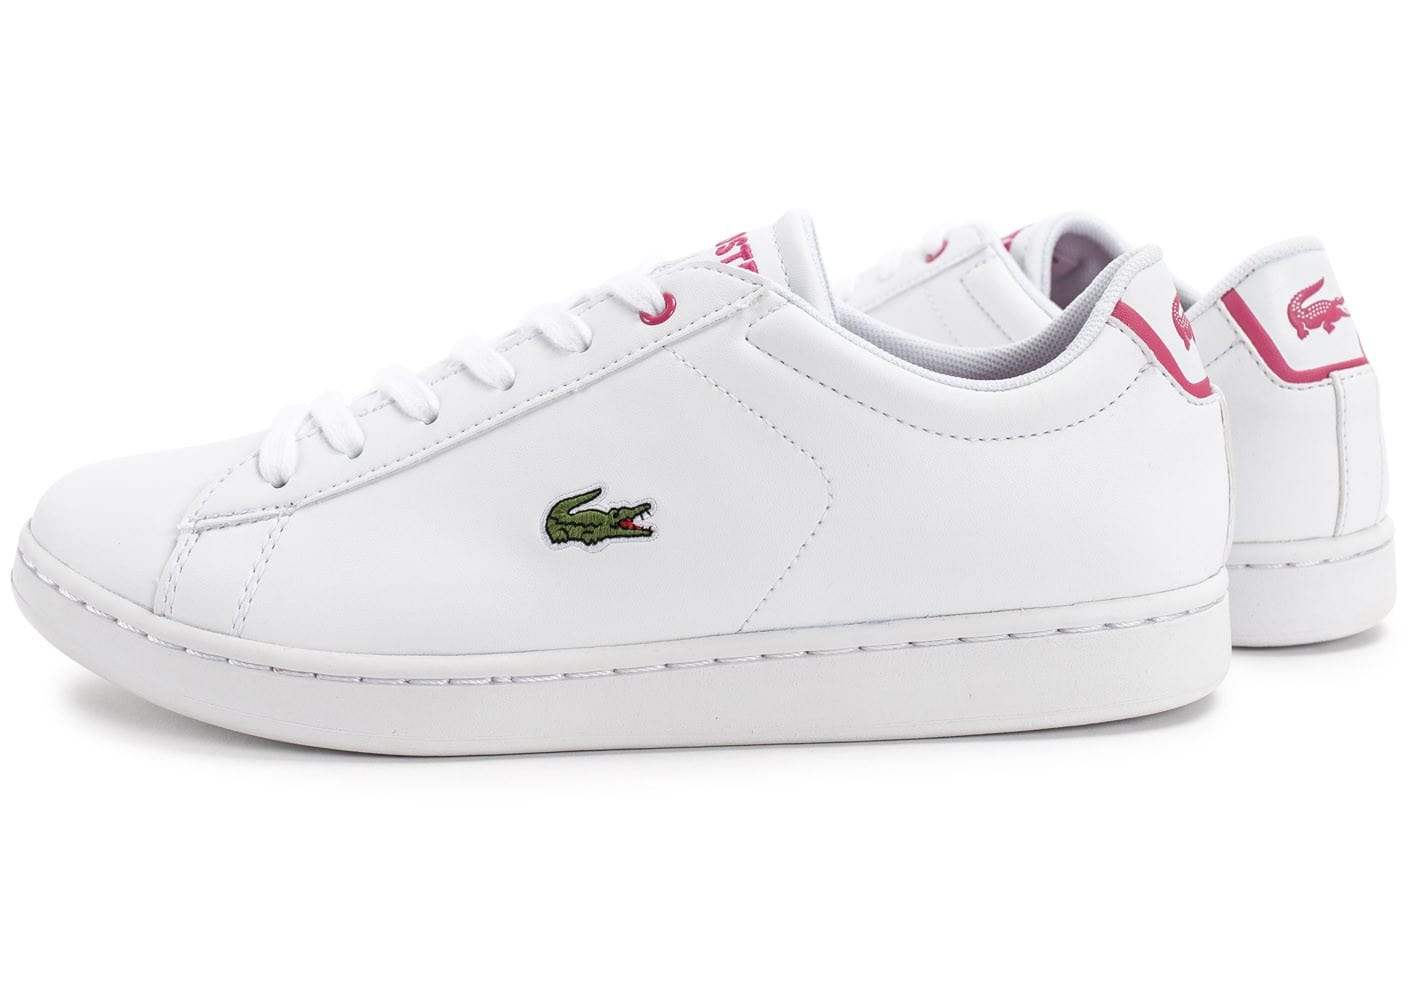 Chaussure Lacoste Carnaby Evo